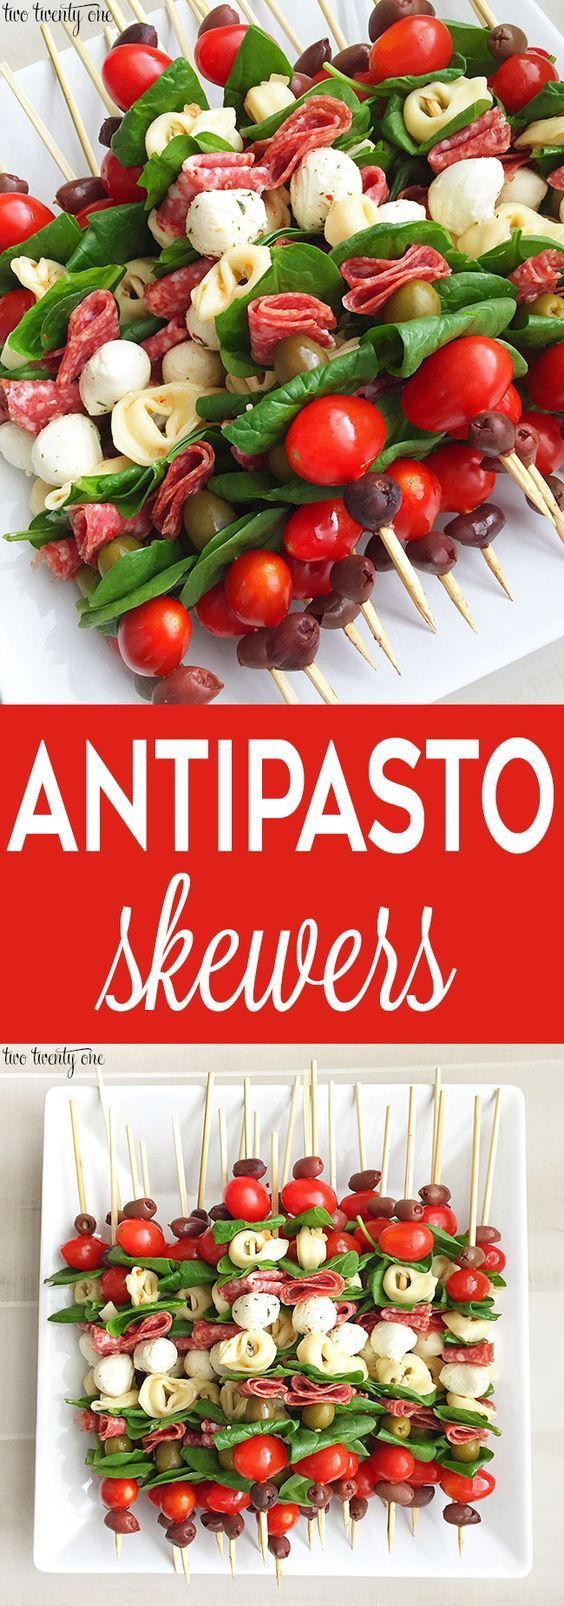 Delicious antipasto skewers! Great appetizer and easy to make!